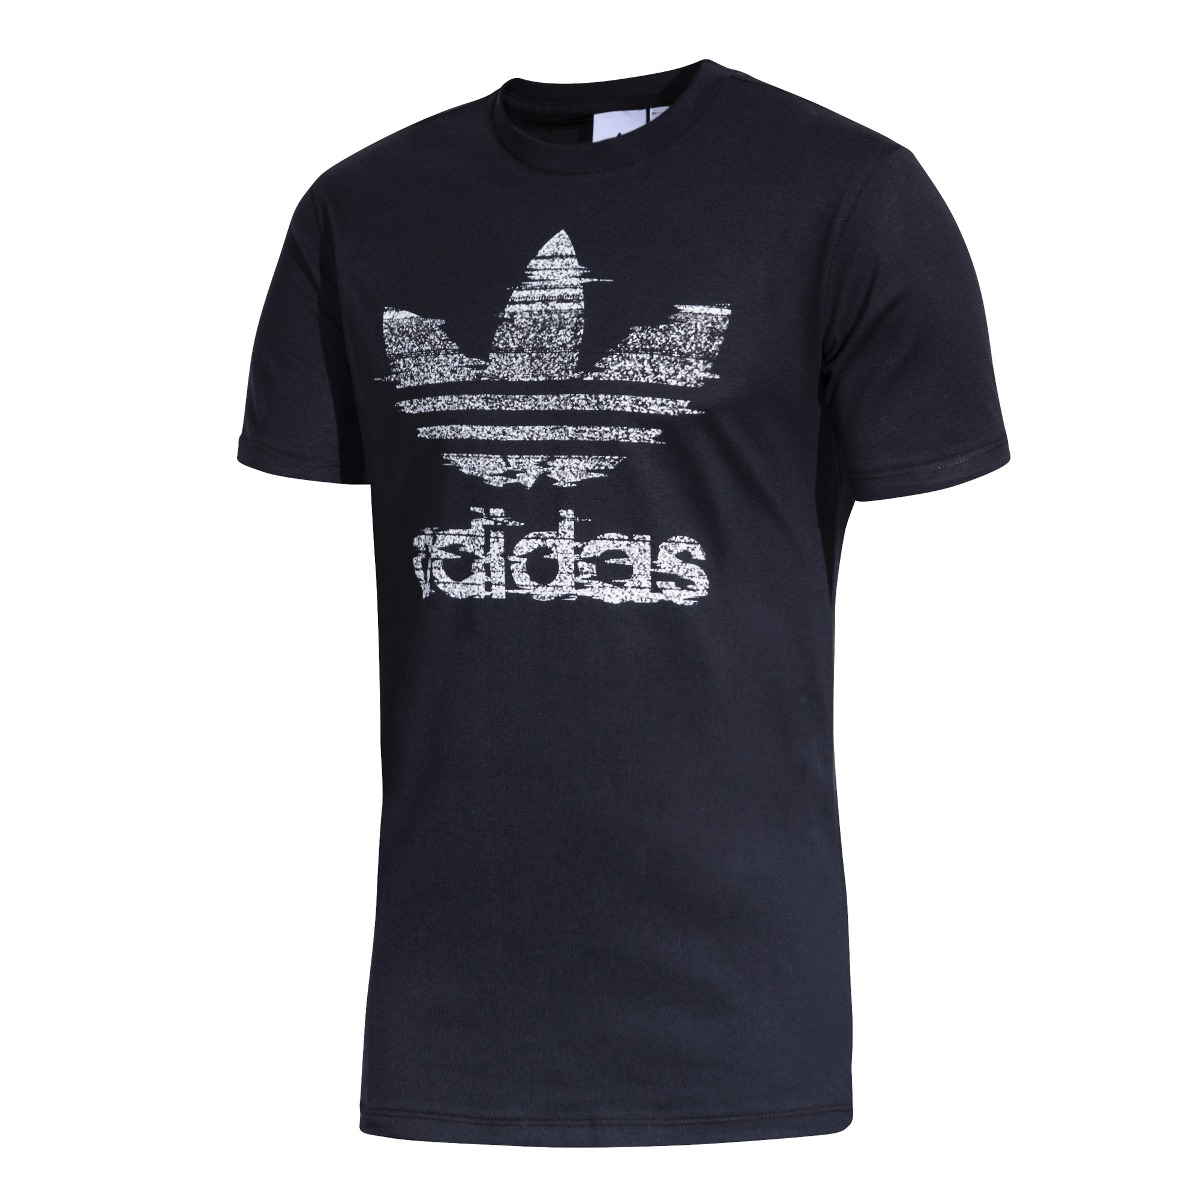 c3426ae1efd96 remera adidas originals traction trefoil hombre cx0058. Cargando zoom.